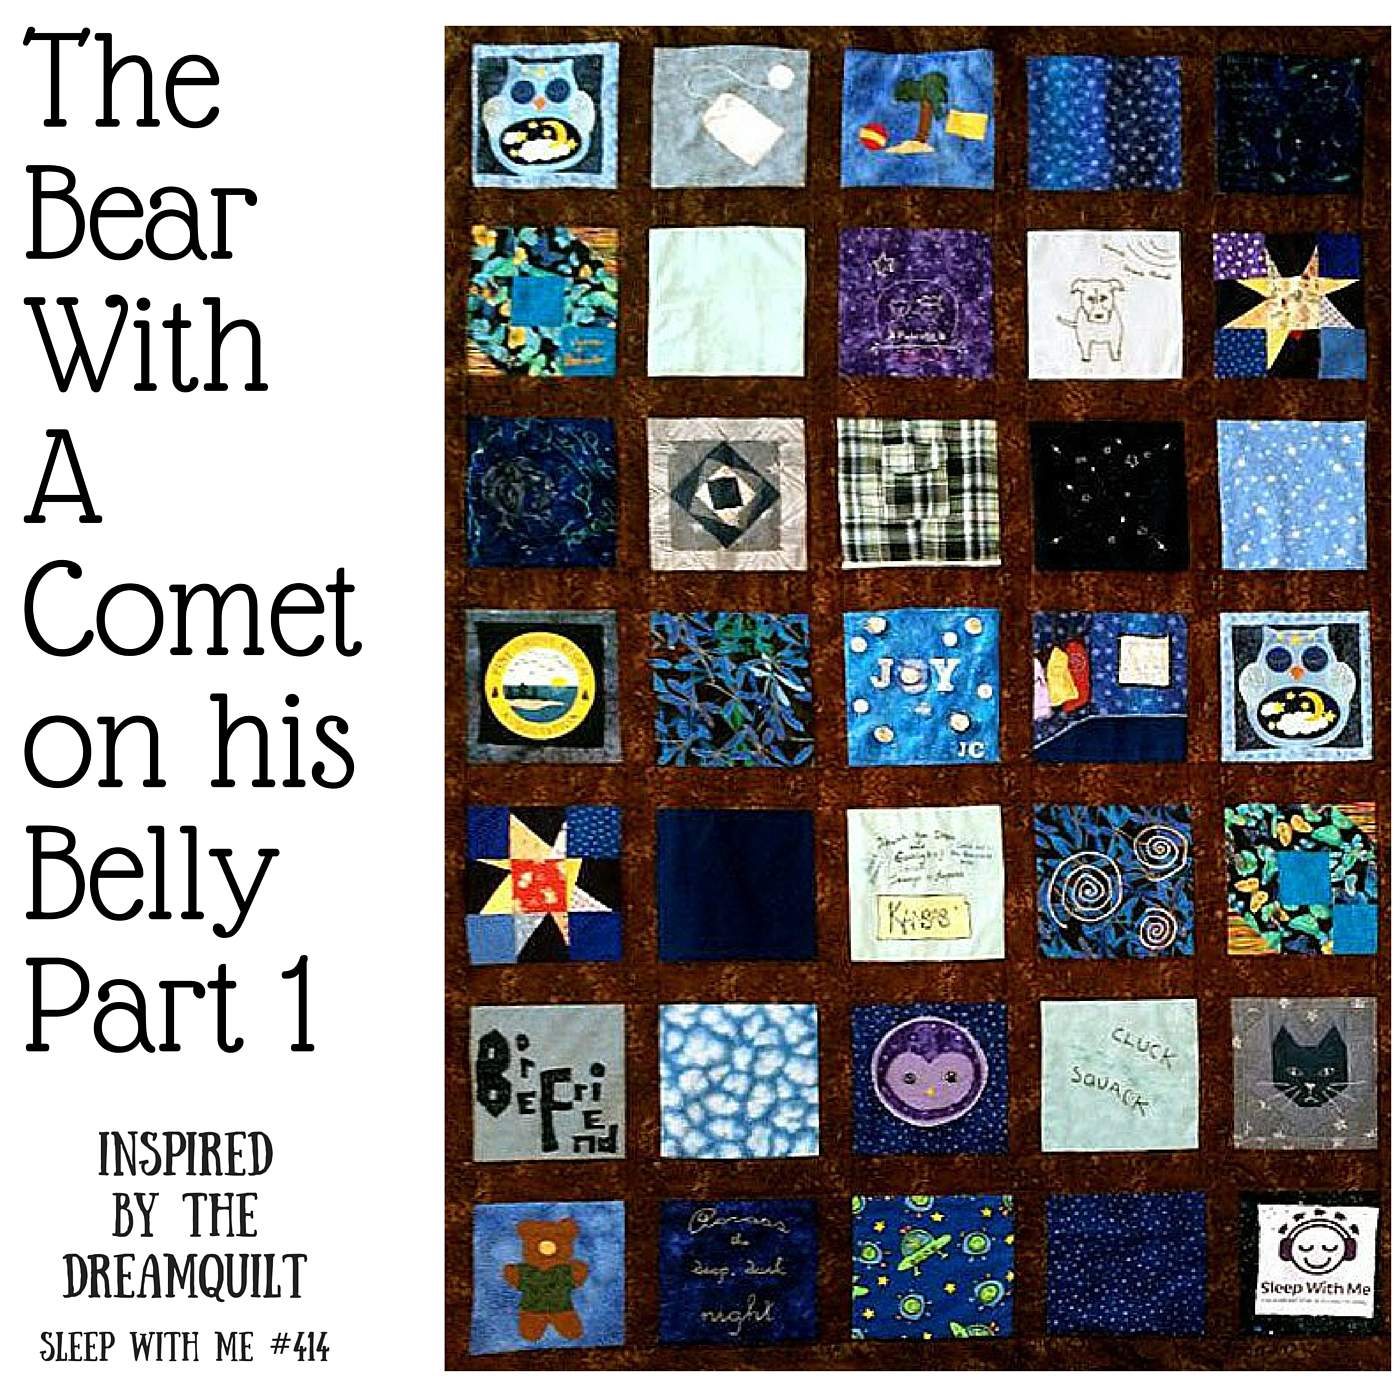 The Bear With a Comet on his Belly | Inspired by the Dreamquilt | Sleep With Me #414